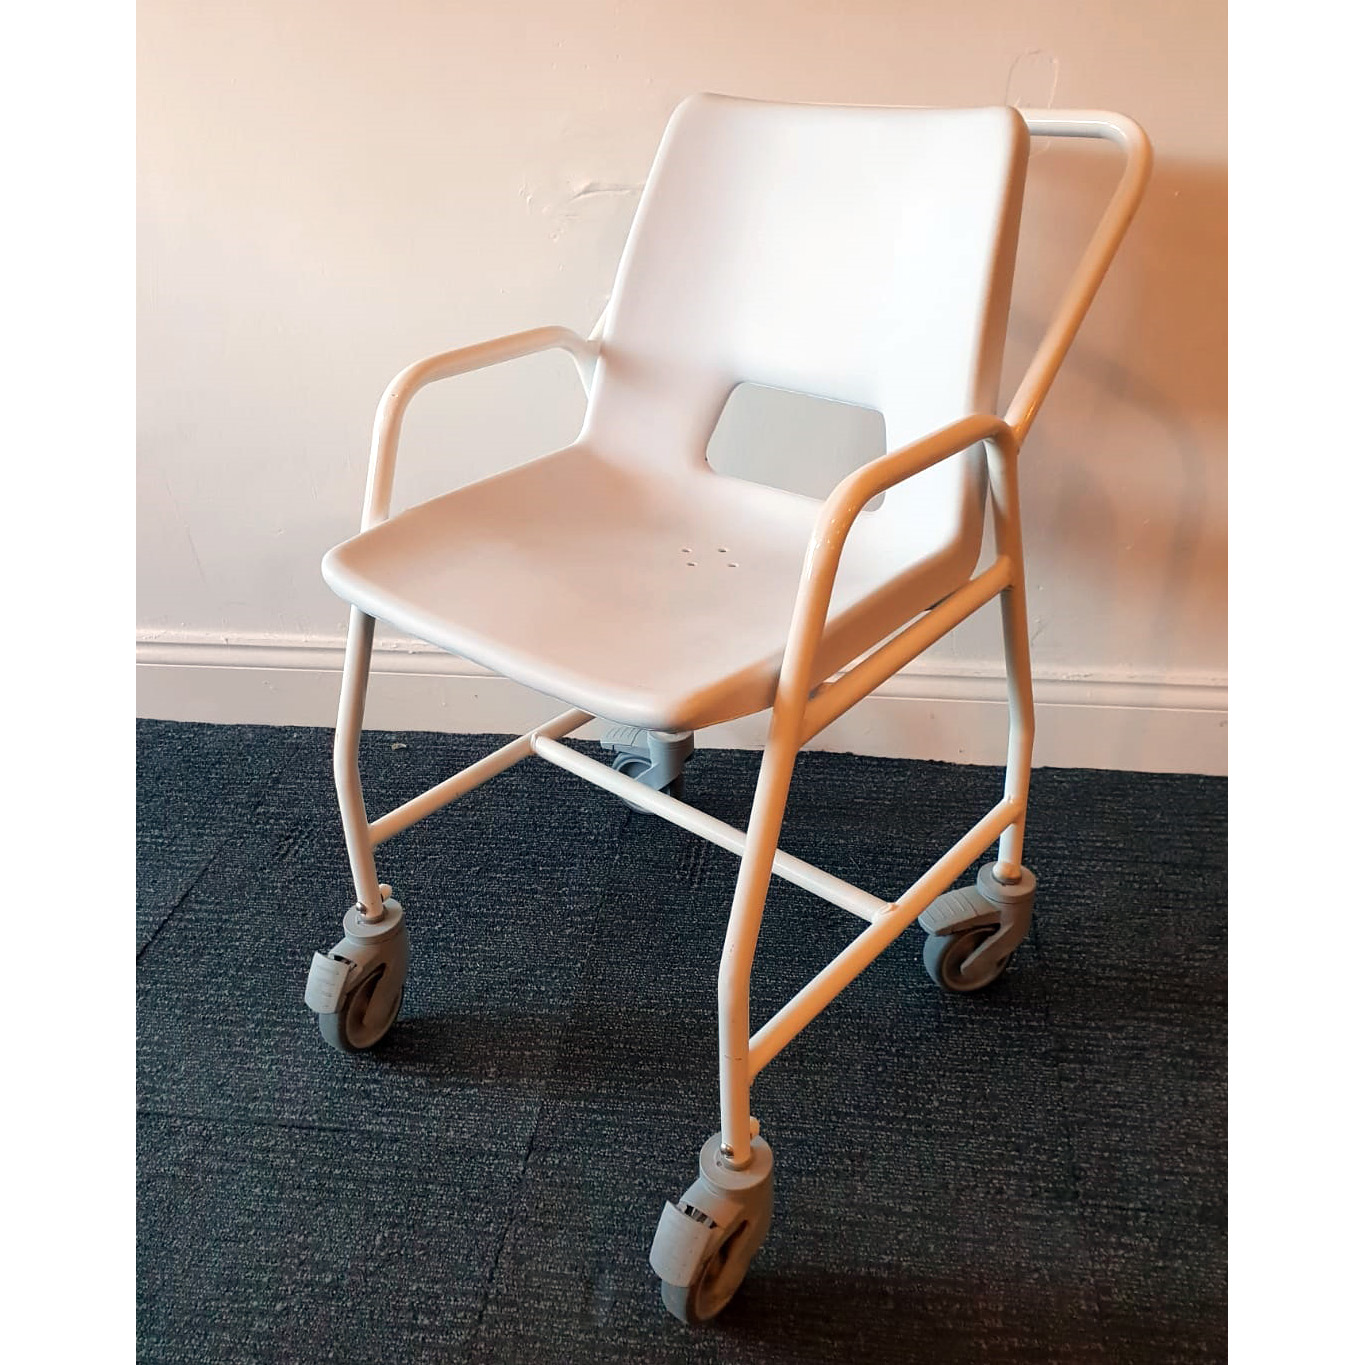 s_2018_11_03-wheeled-shower-chair